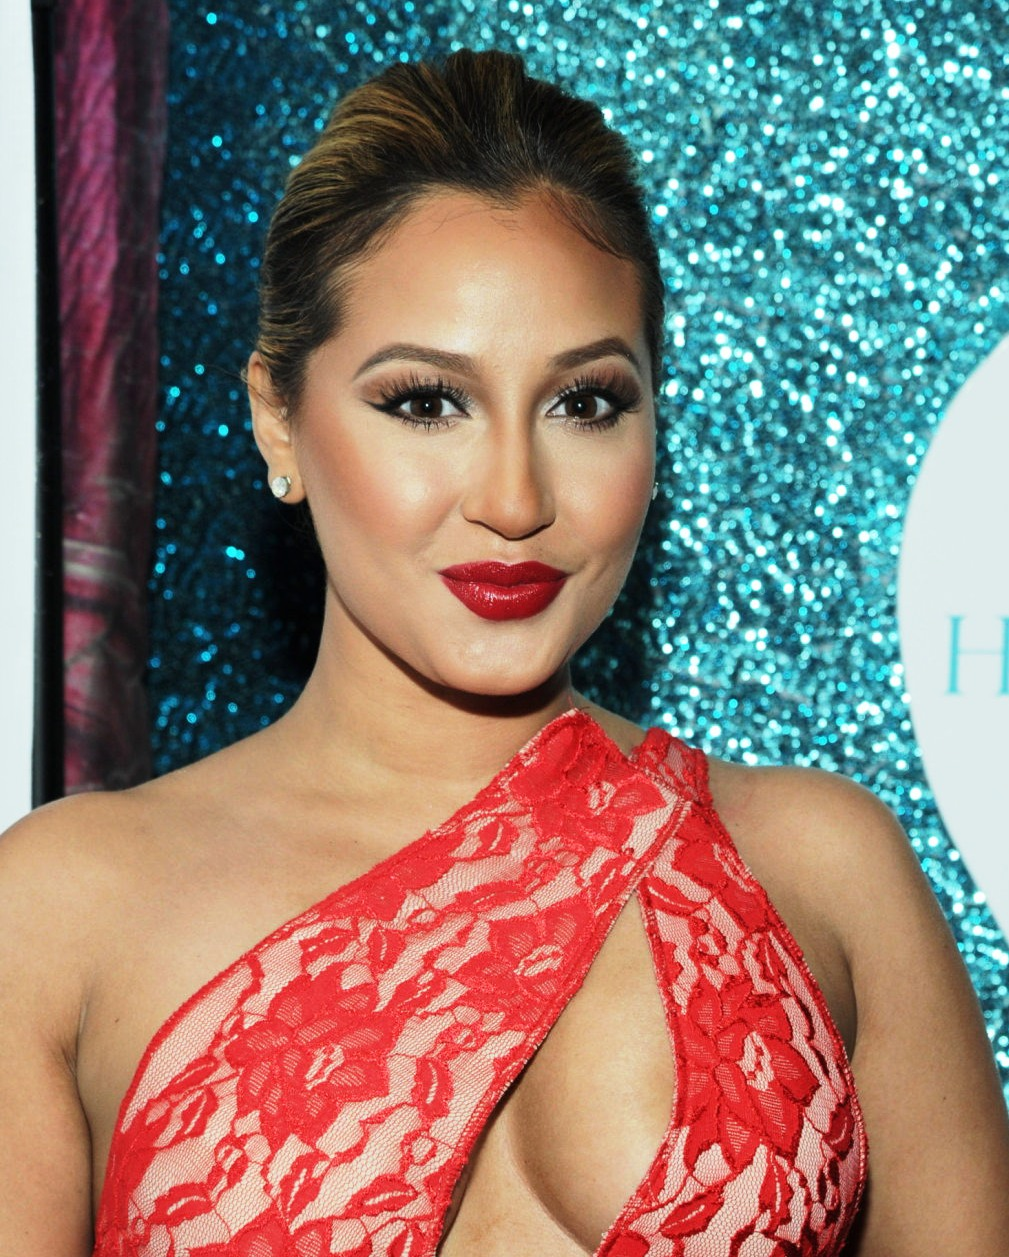 Adrienne Bailon Breasts Shows Her Tits Again On The